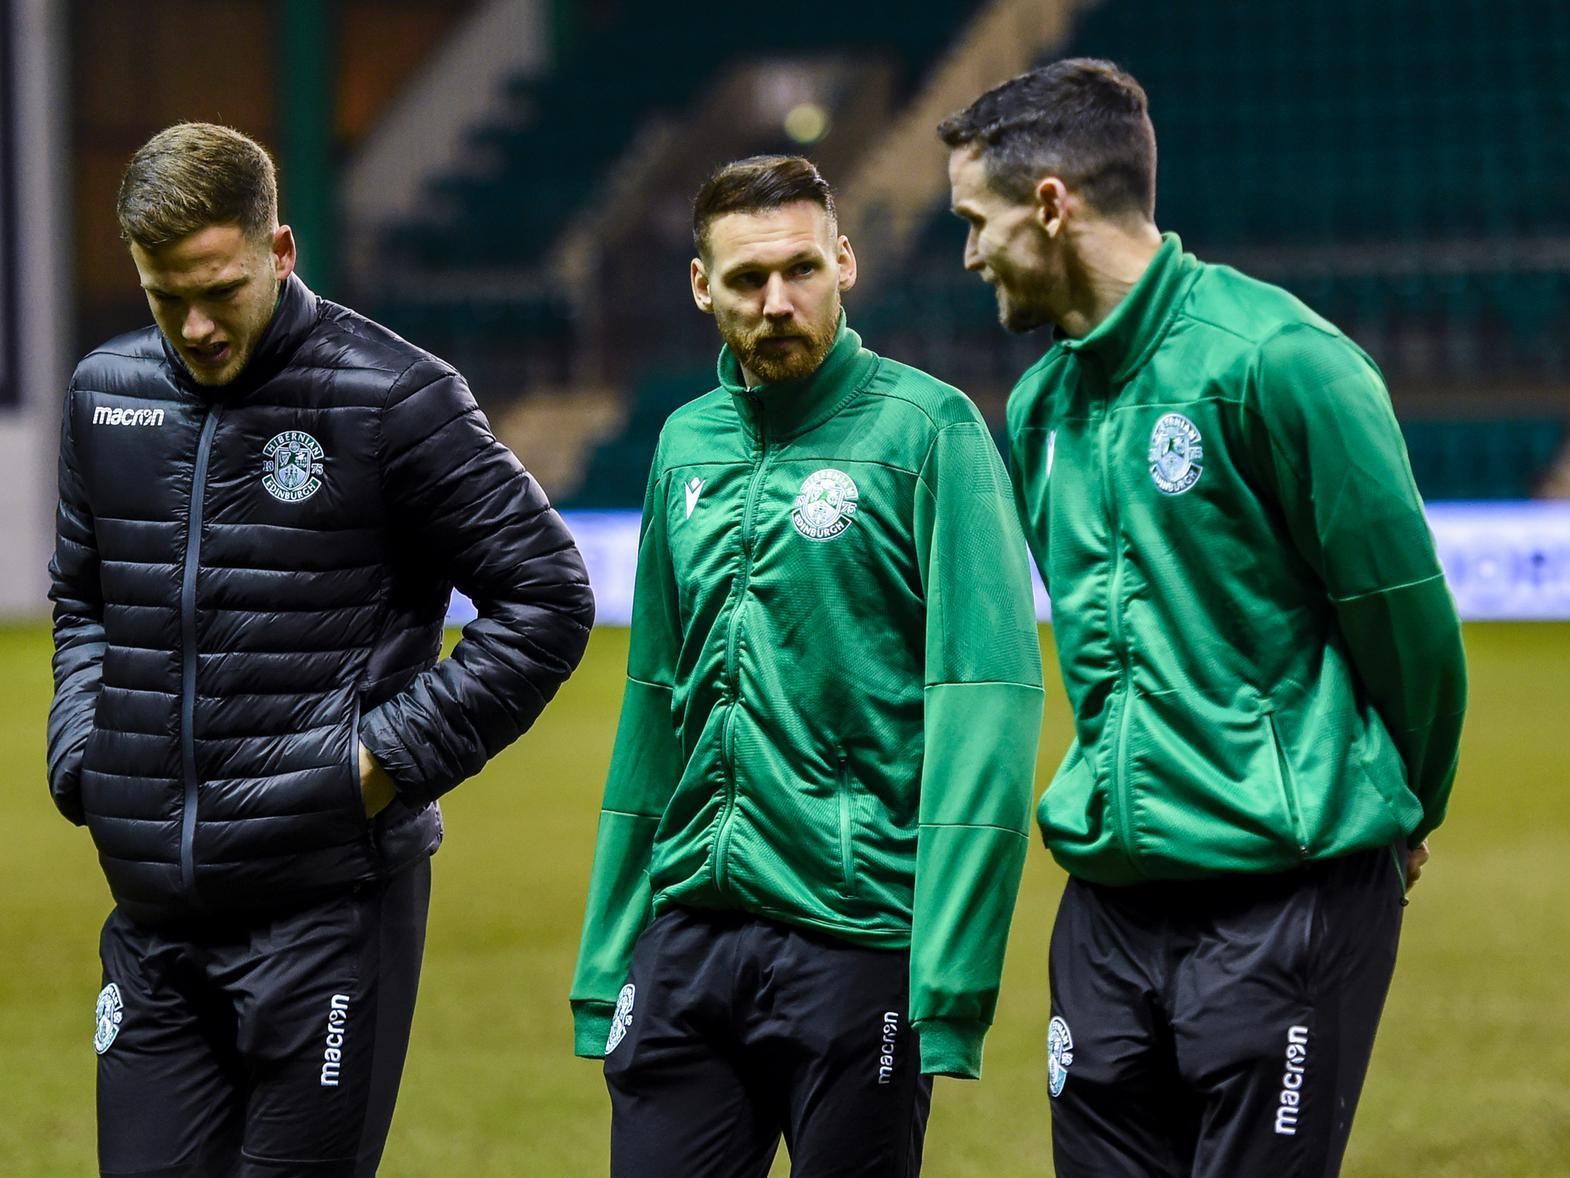 Hibs v Inverness CT LIVE: Updates from Easter Road